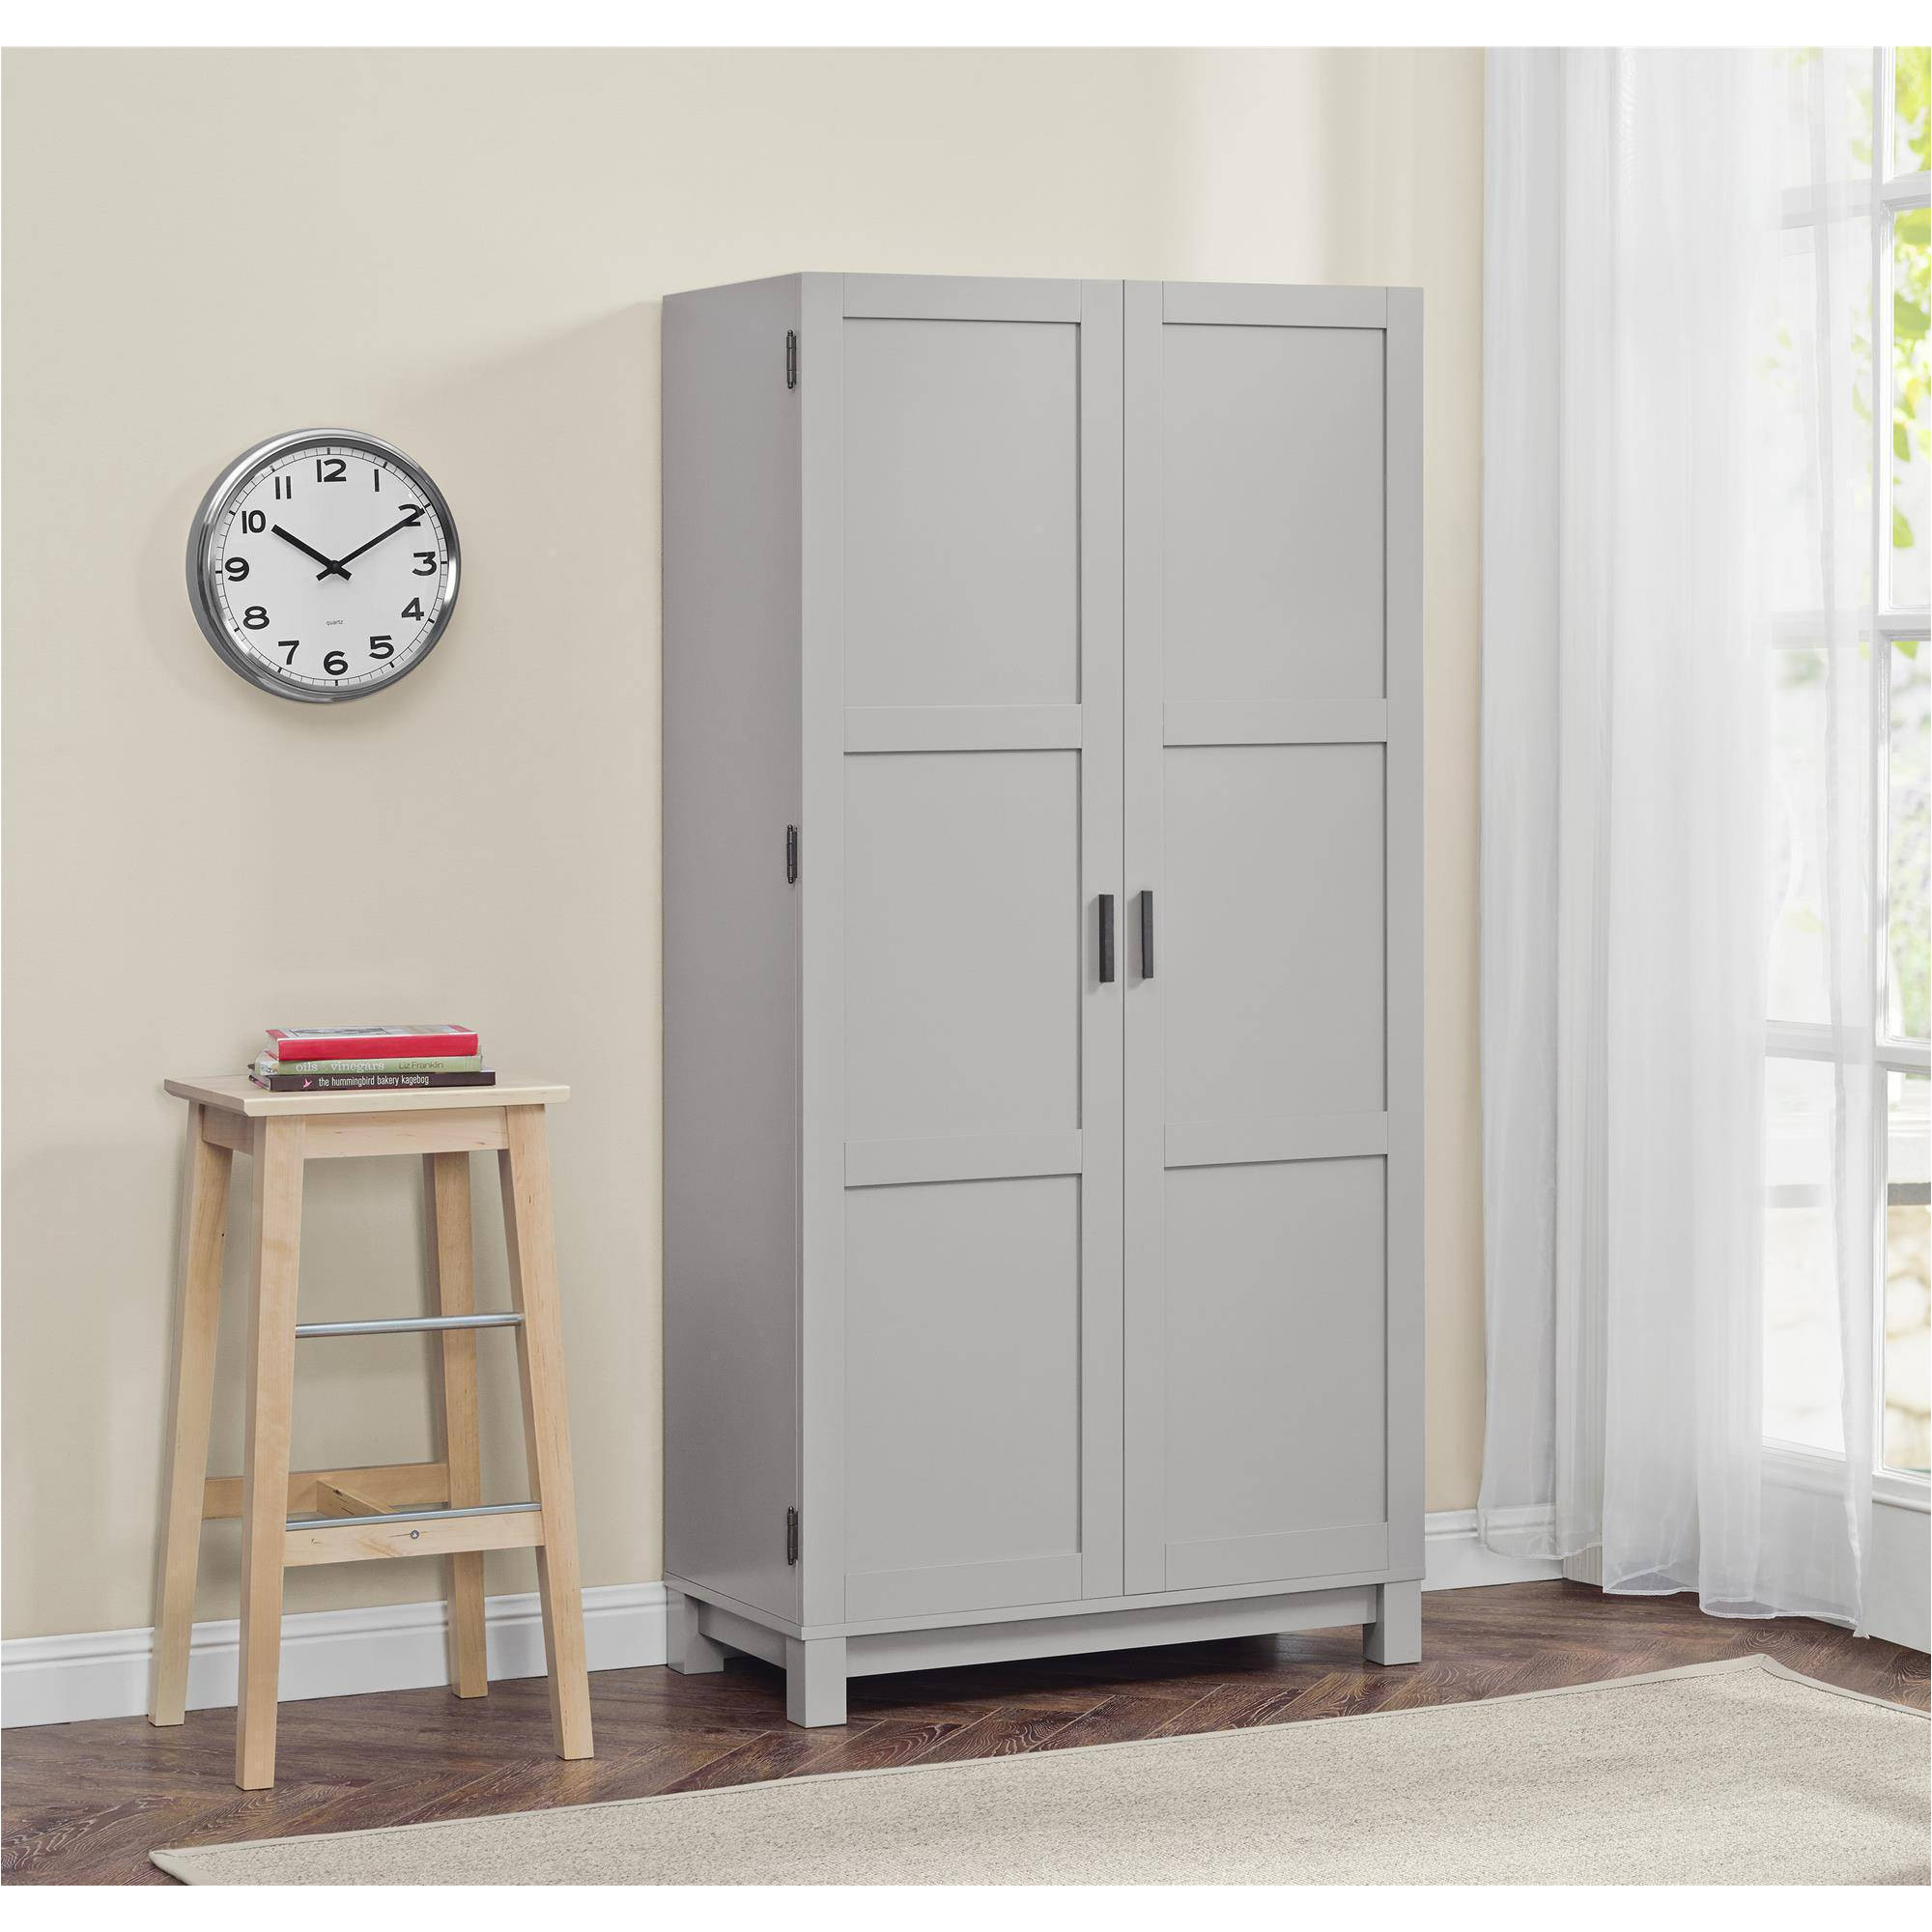 better homes and gardens langley bay storage cabinet multiple colors walmart com